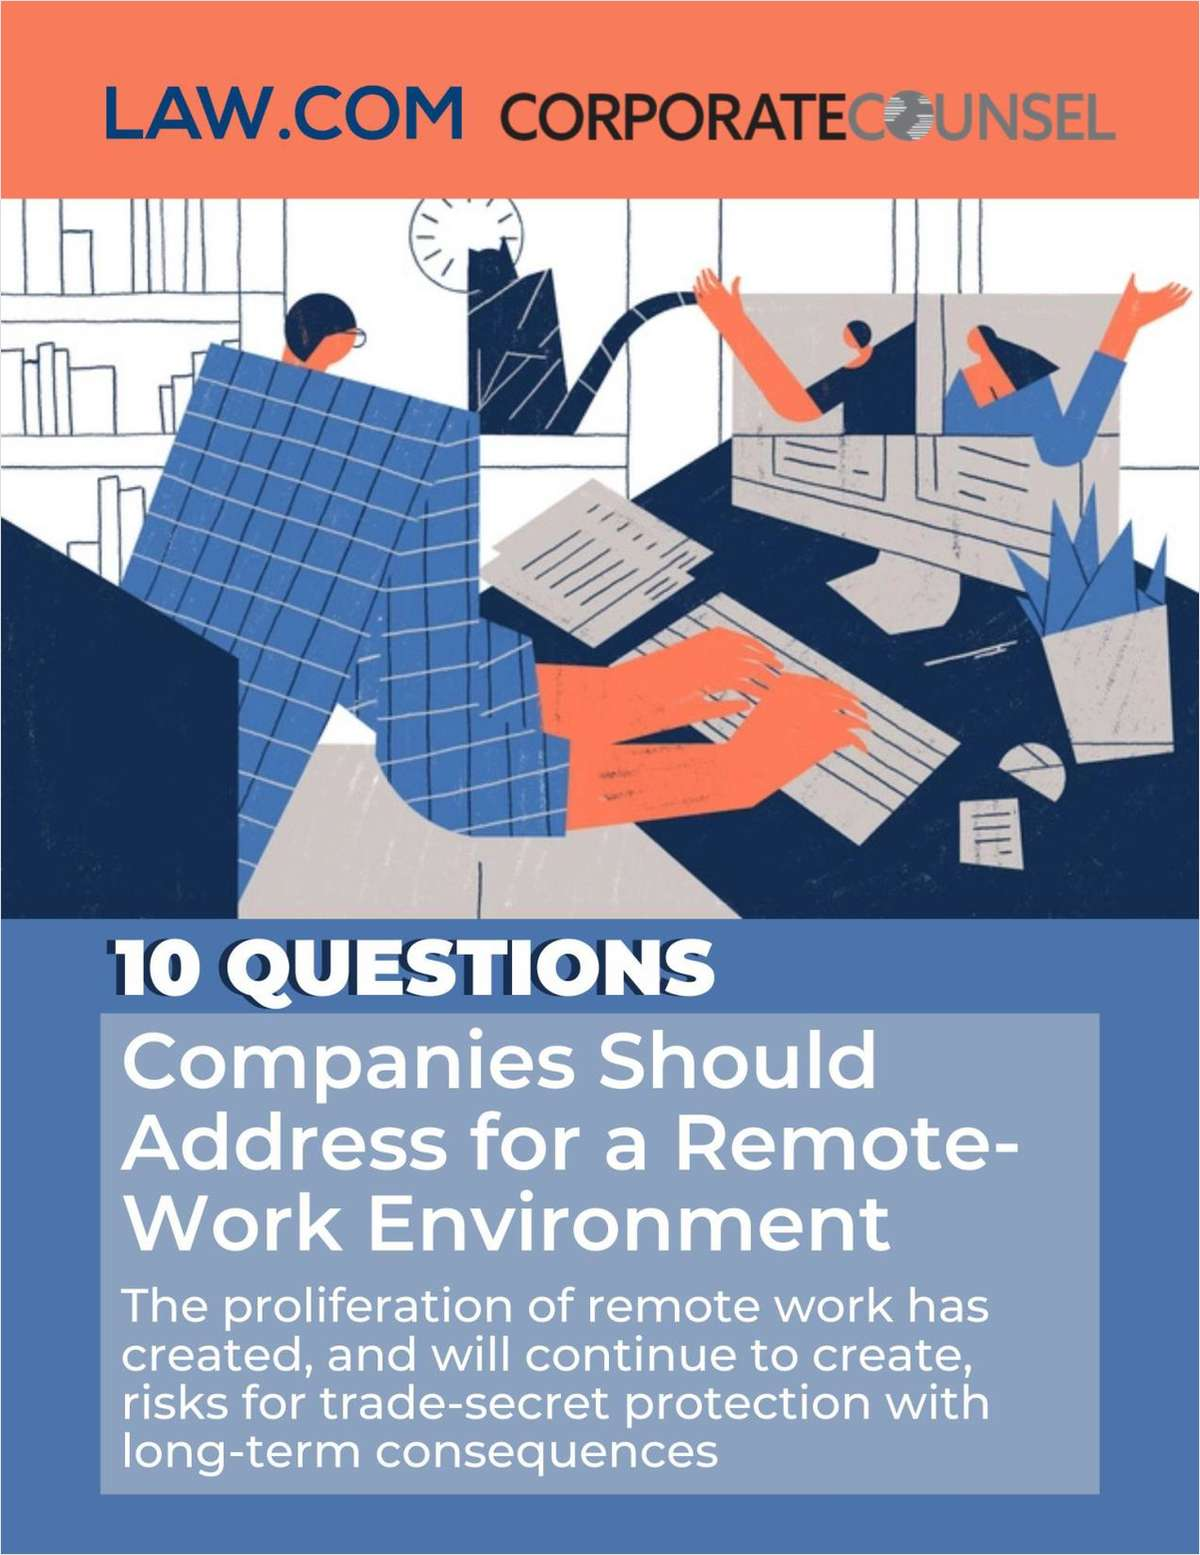 10 Questions Companies Should Address for a Remote-Work Environment